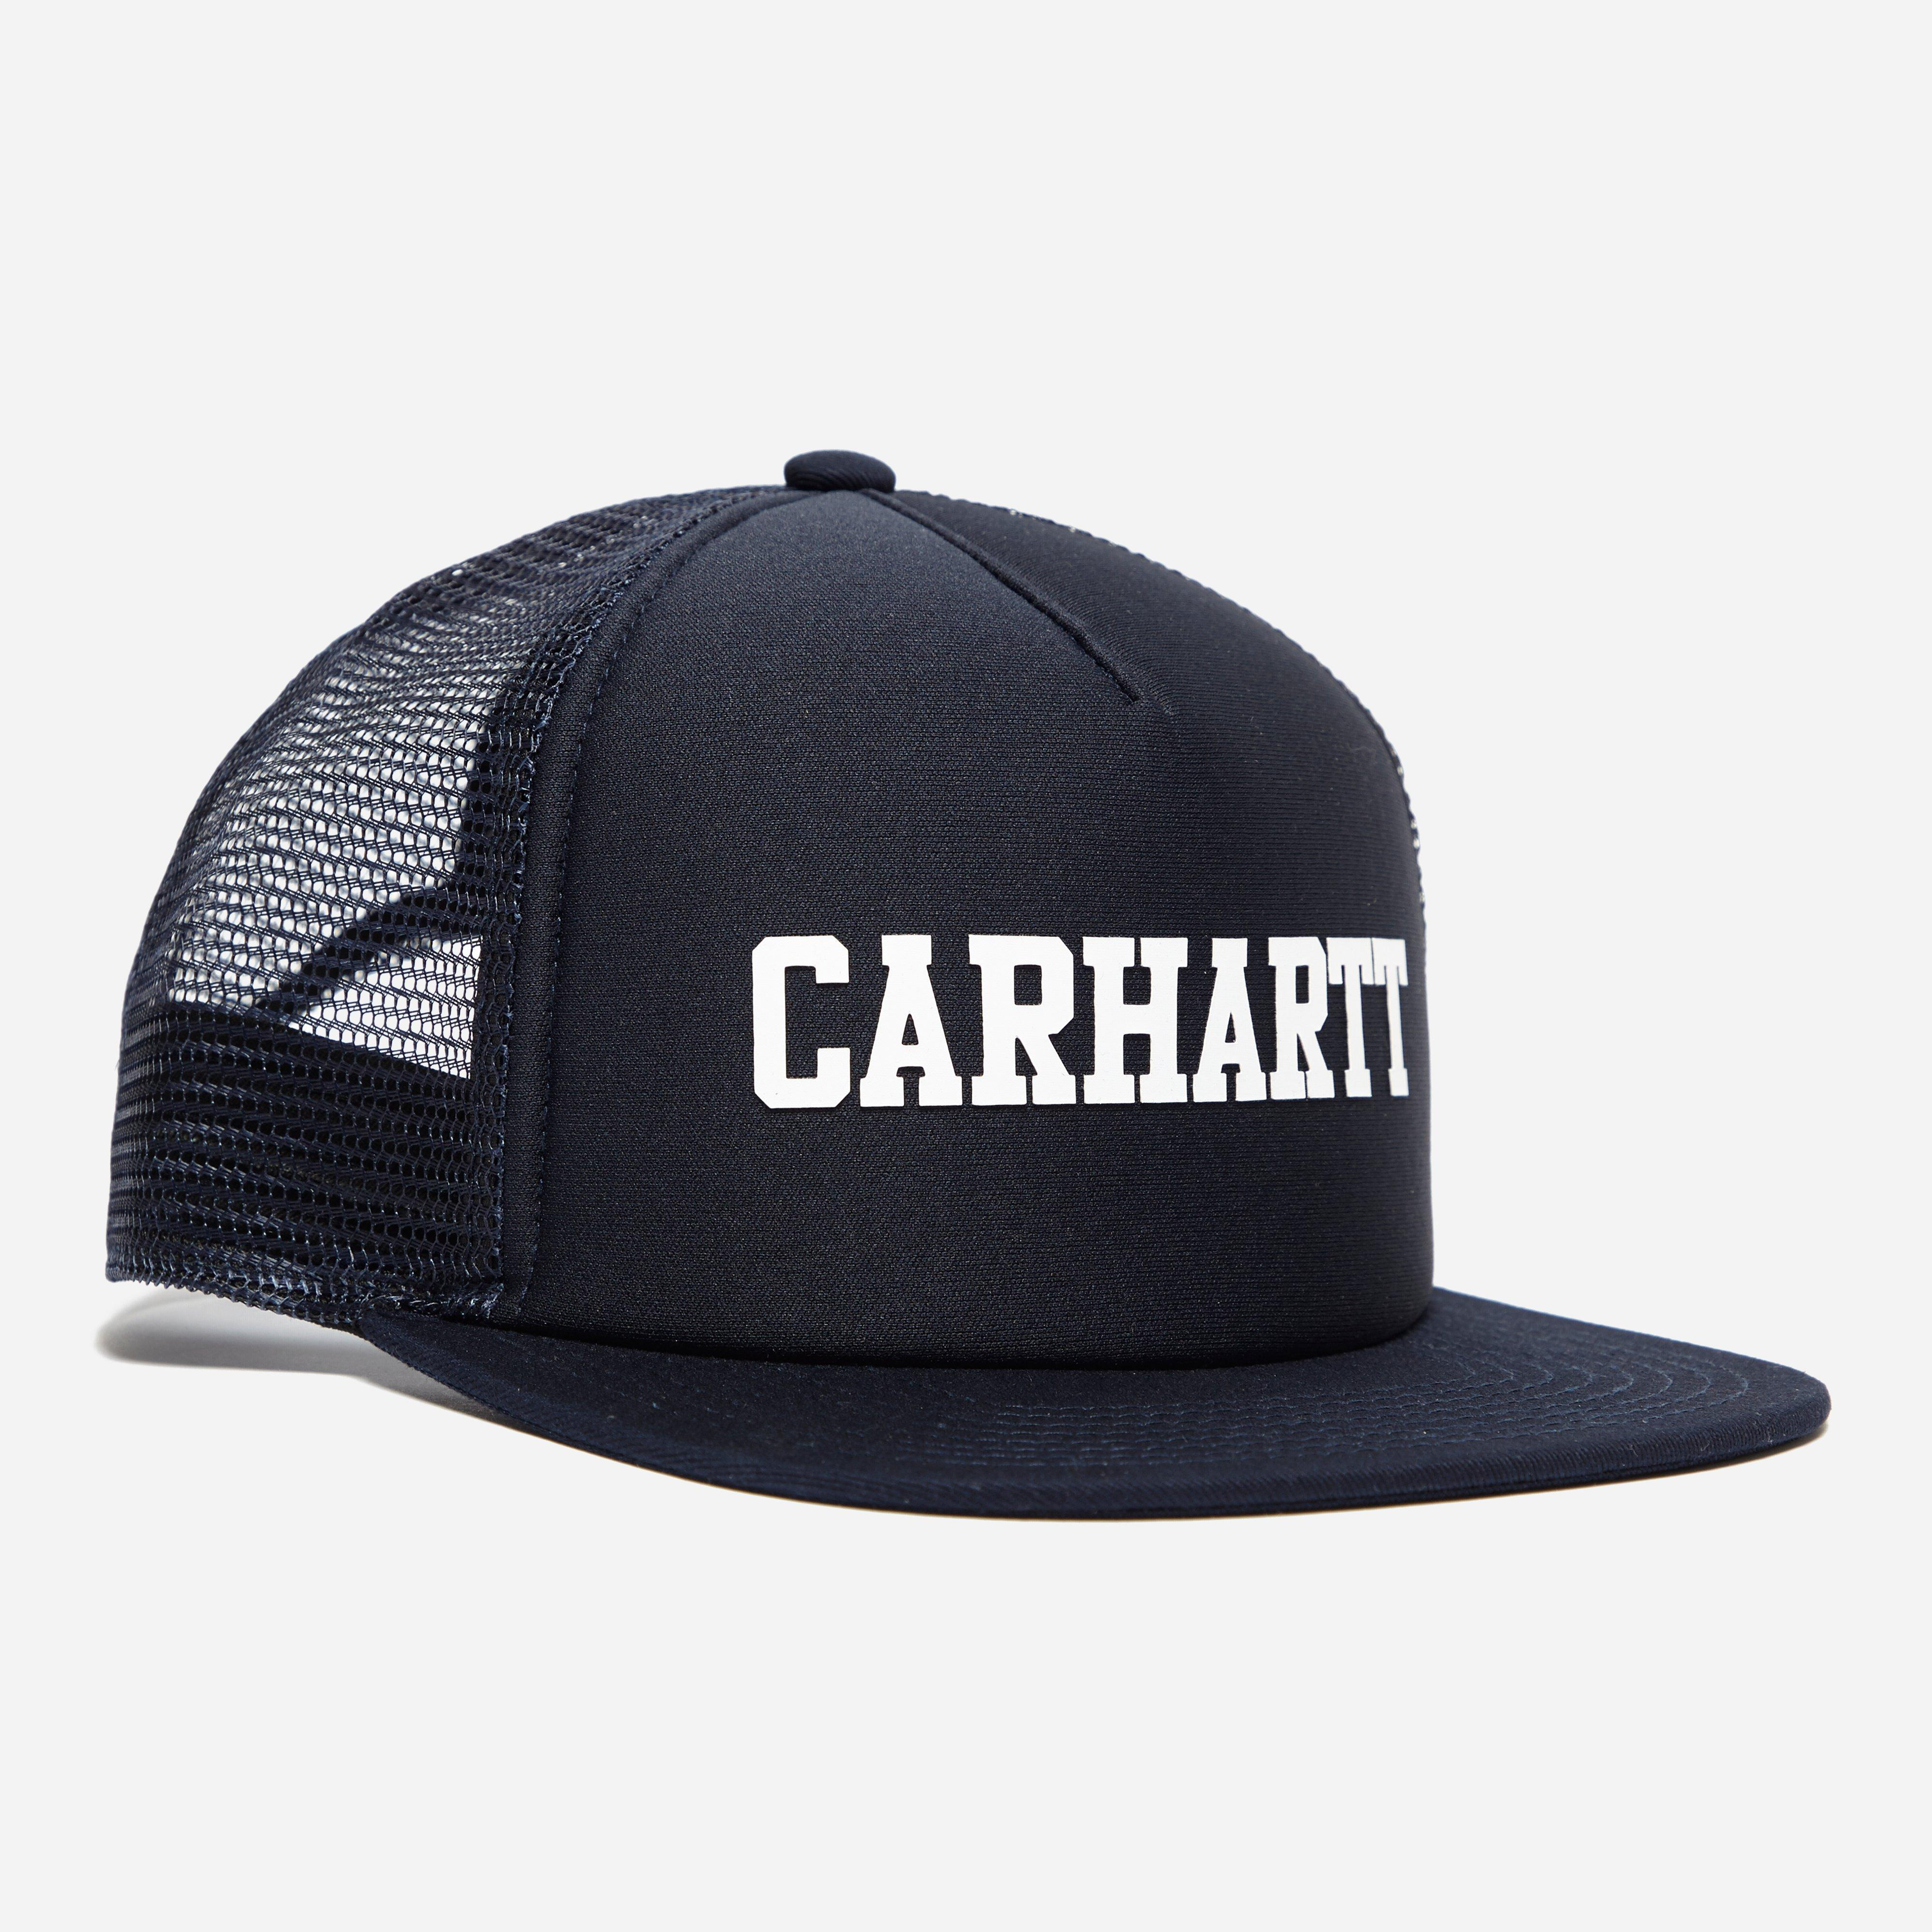 09dd7c0cd94 Lyst - Carhartt Wip College Trucker Cap in Blue for Men